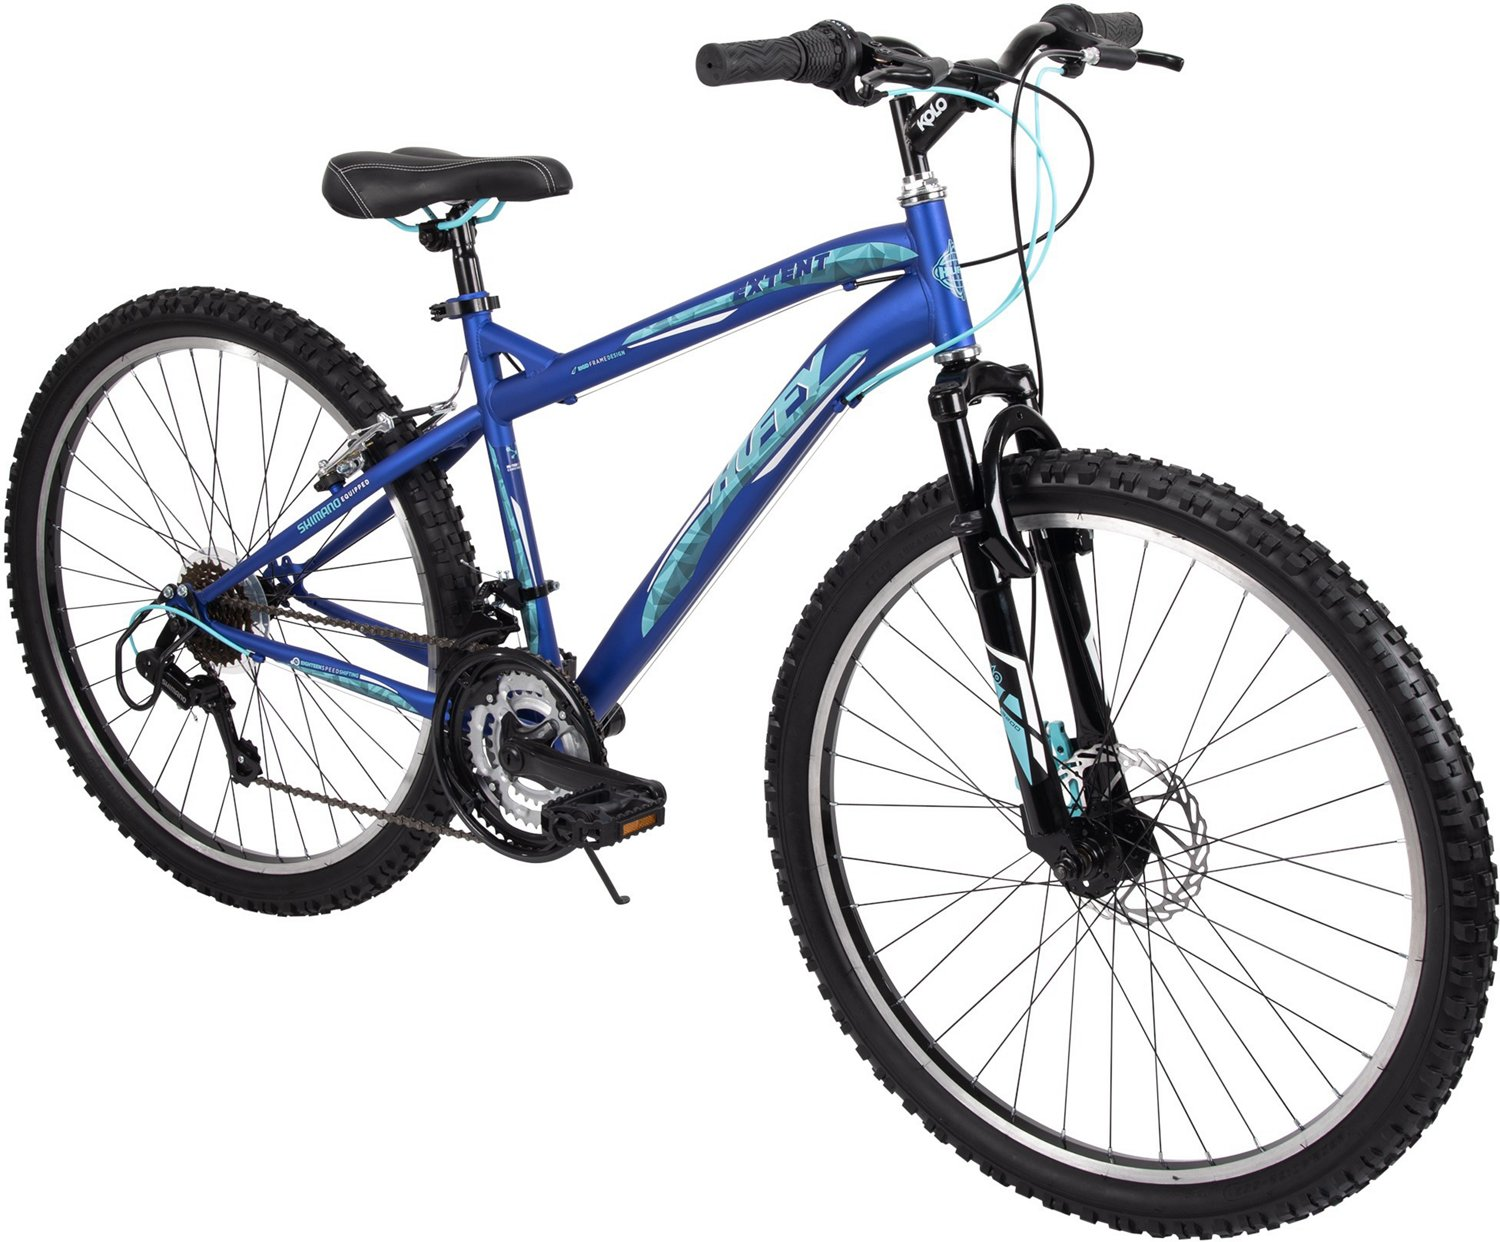 3142547f92b Display product reviews for Huffy Women's Extent 26 in 18-Speed Mountain  Bike